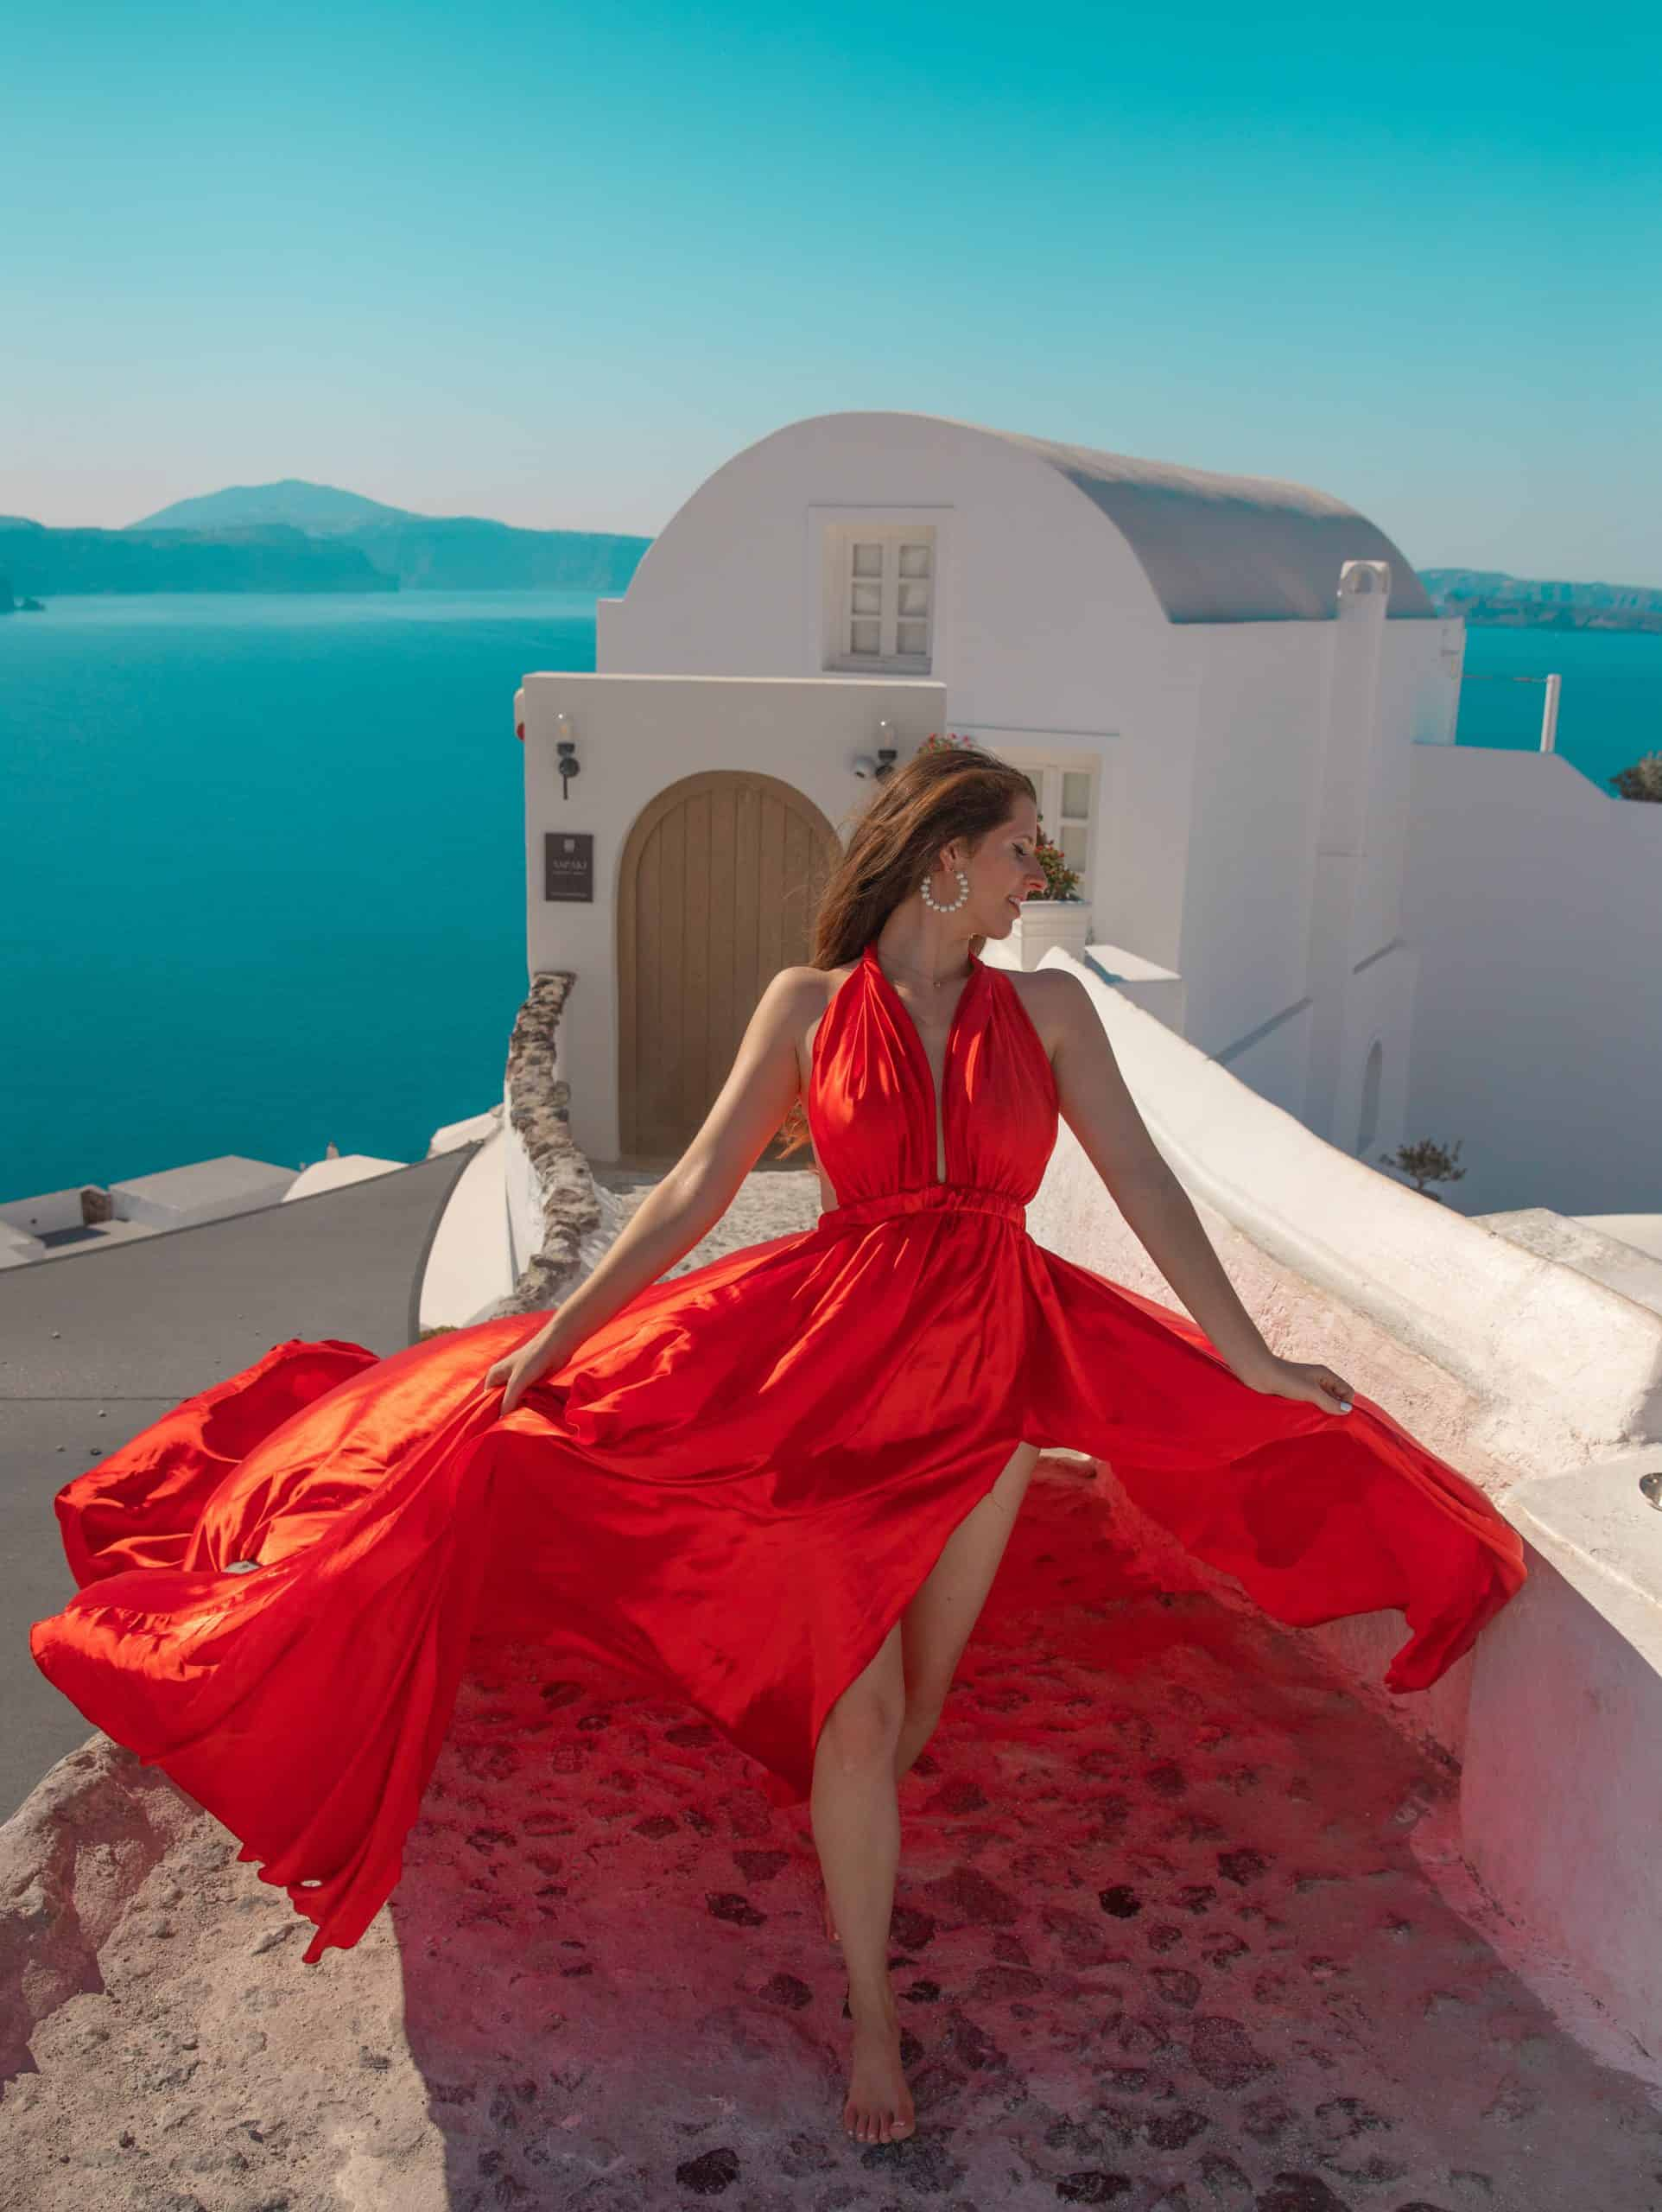 Bettina in Red Dress at typical Santorini House in Oia, Santorini